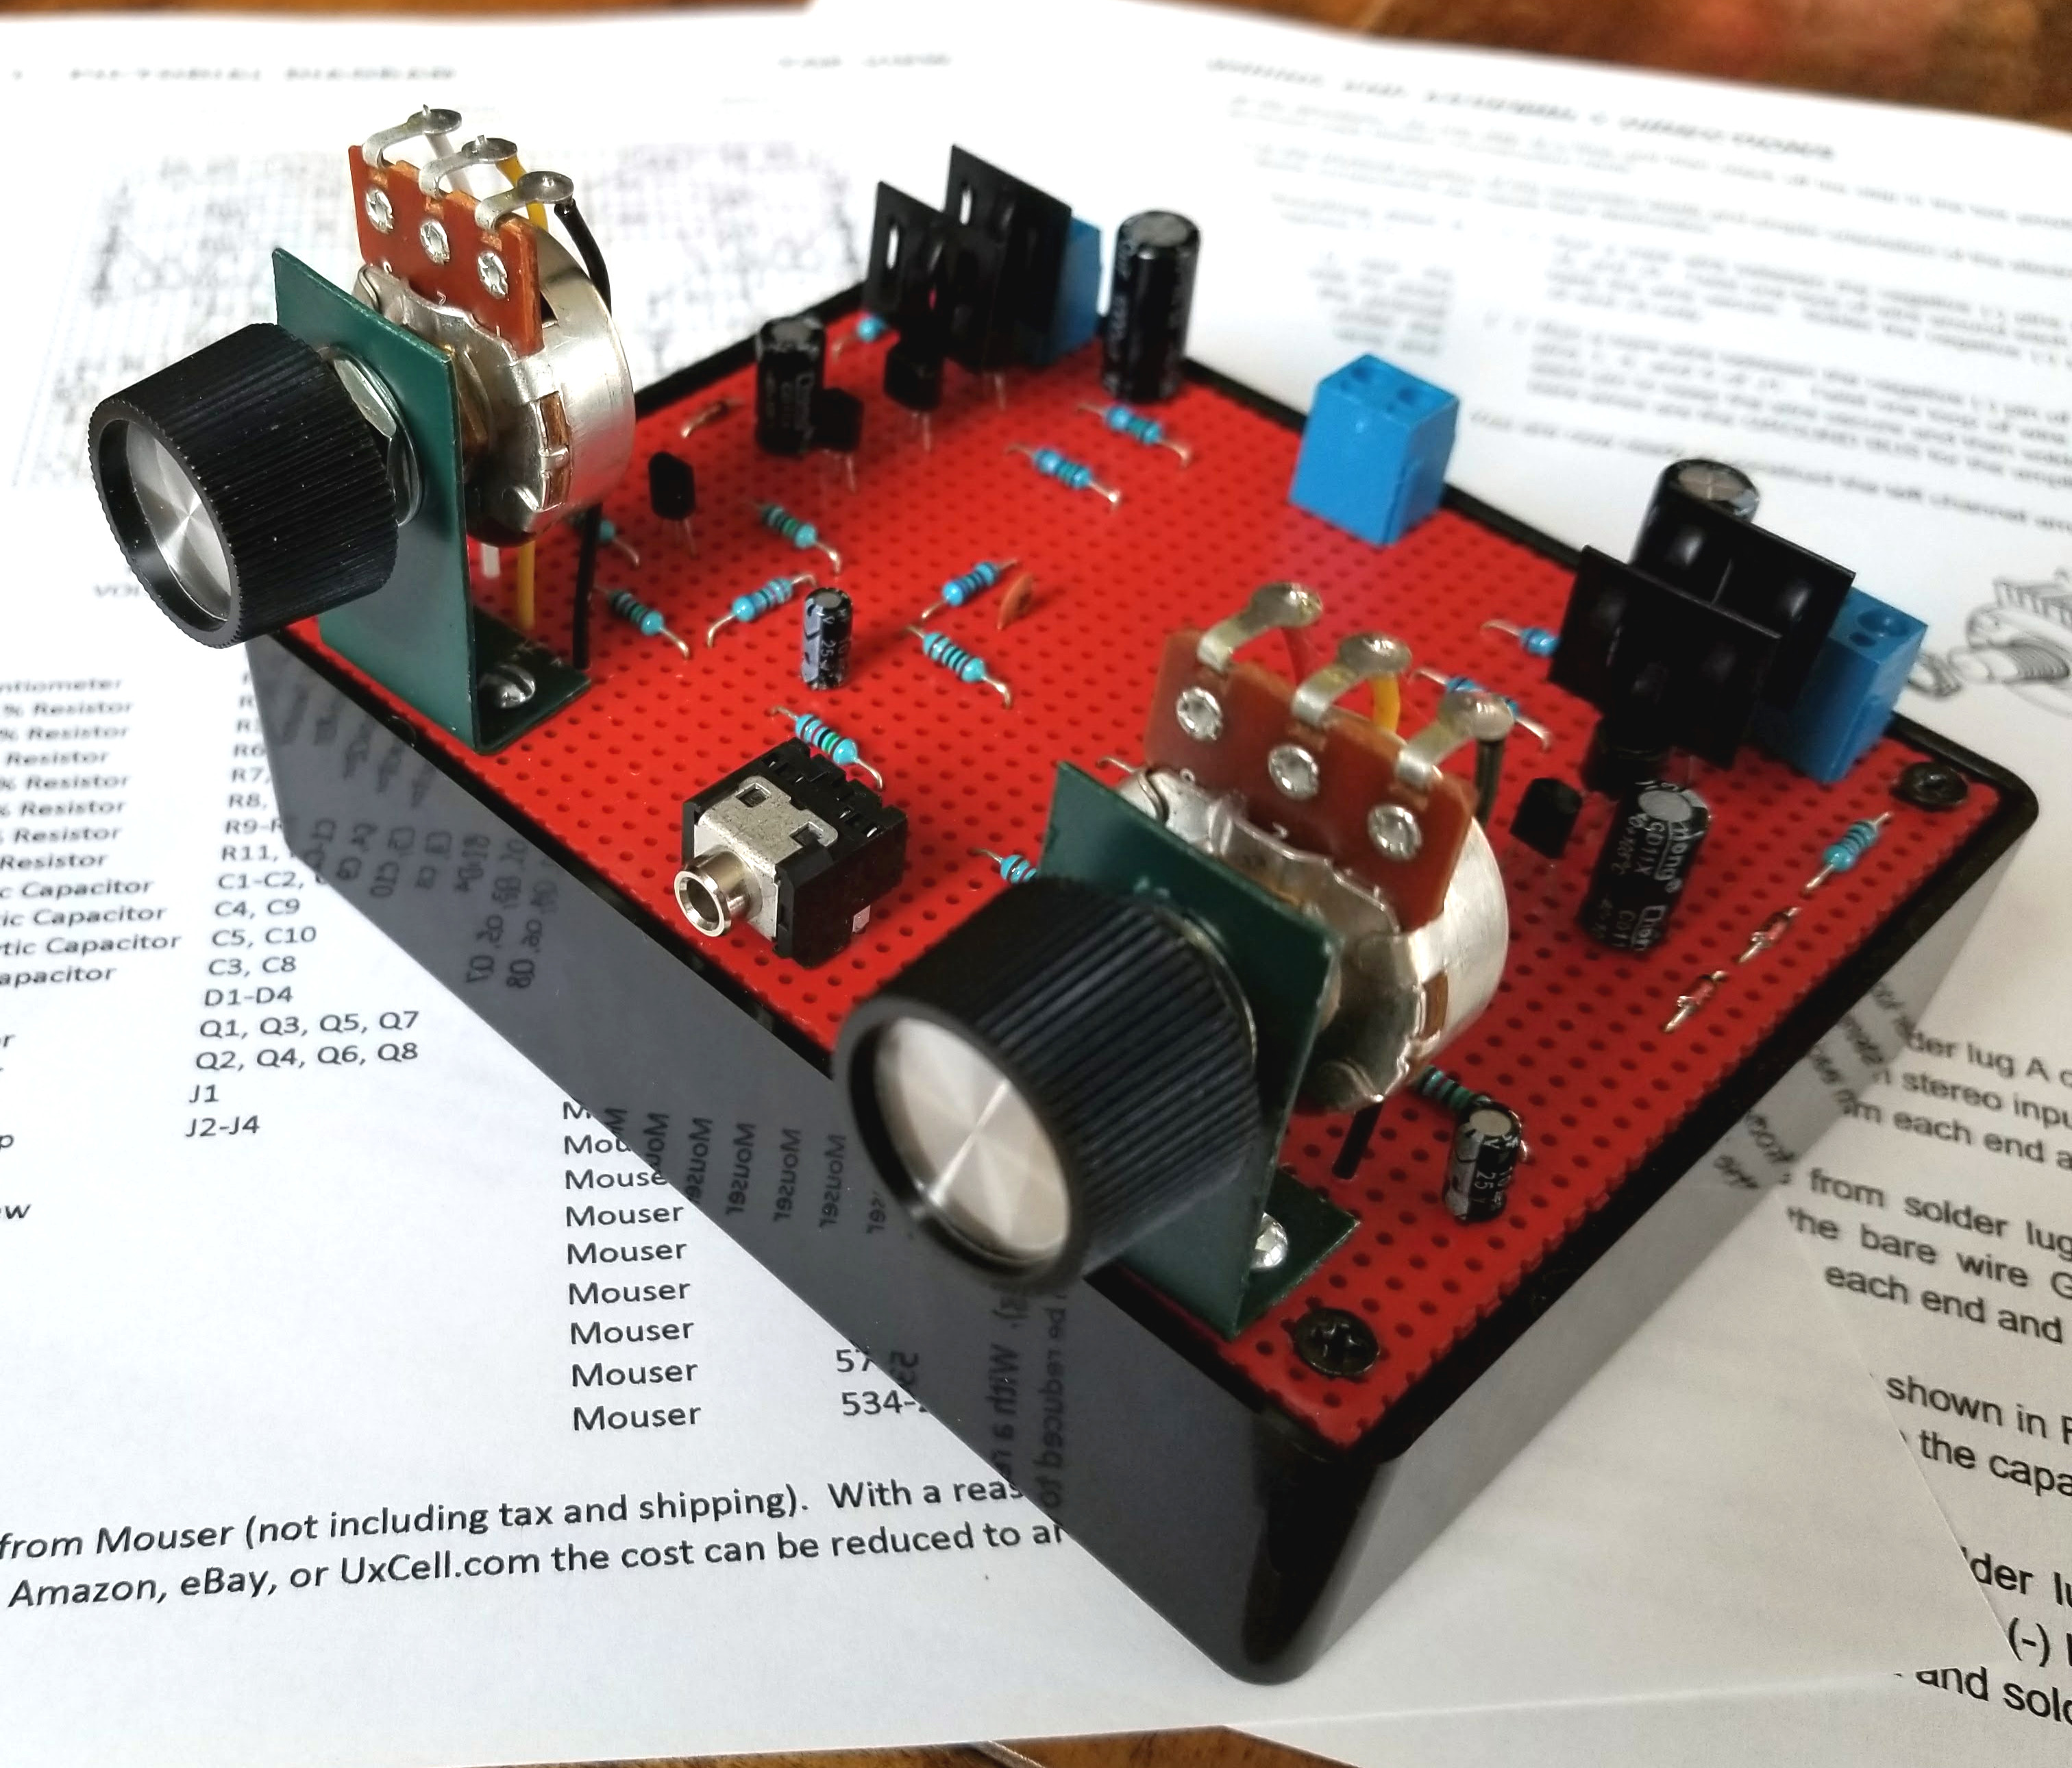 Build This 8 Transistor Stereo Amplifier Signal Booster Short Wave Radio Electronics Project The Assembly Manual Covers Setup And Operation Of Along With Some Modifications You Can Make To Double Output Power If Desired